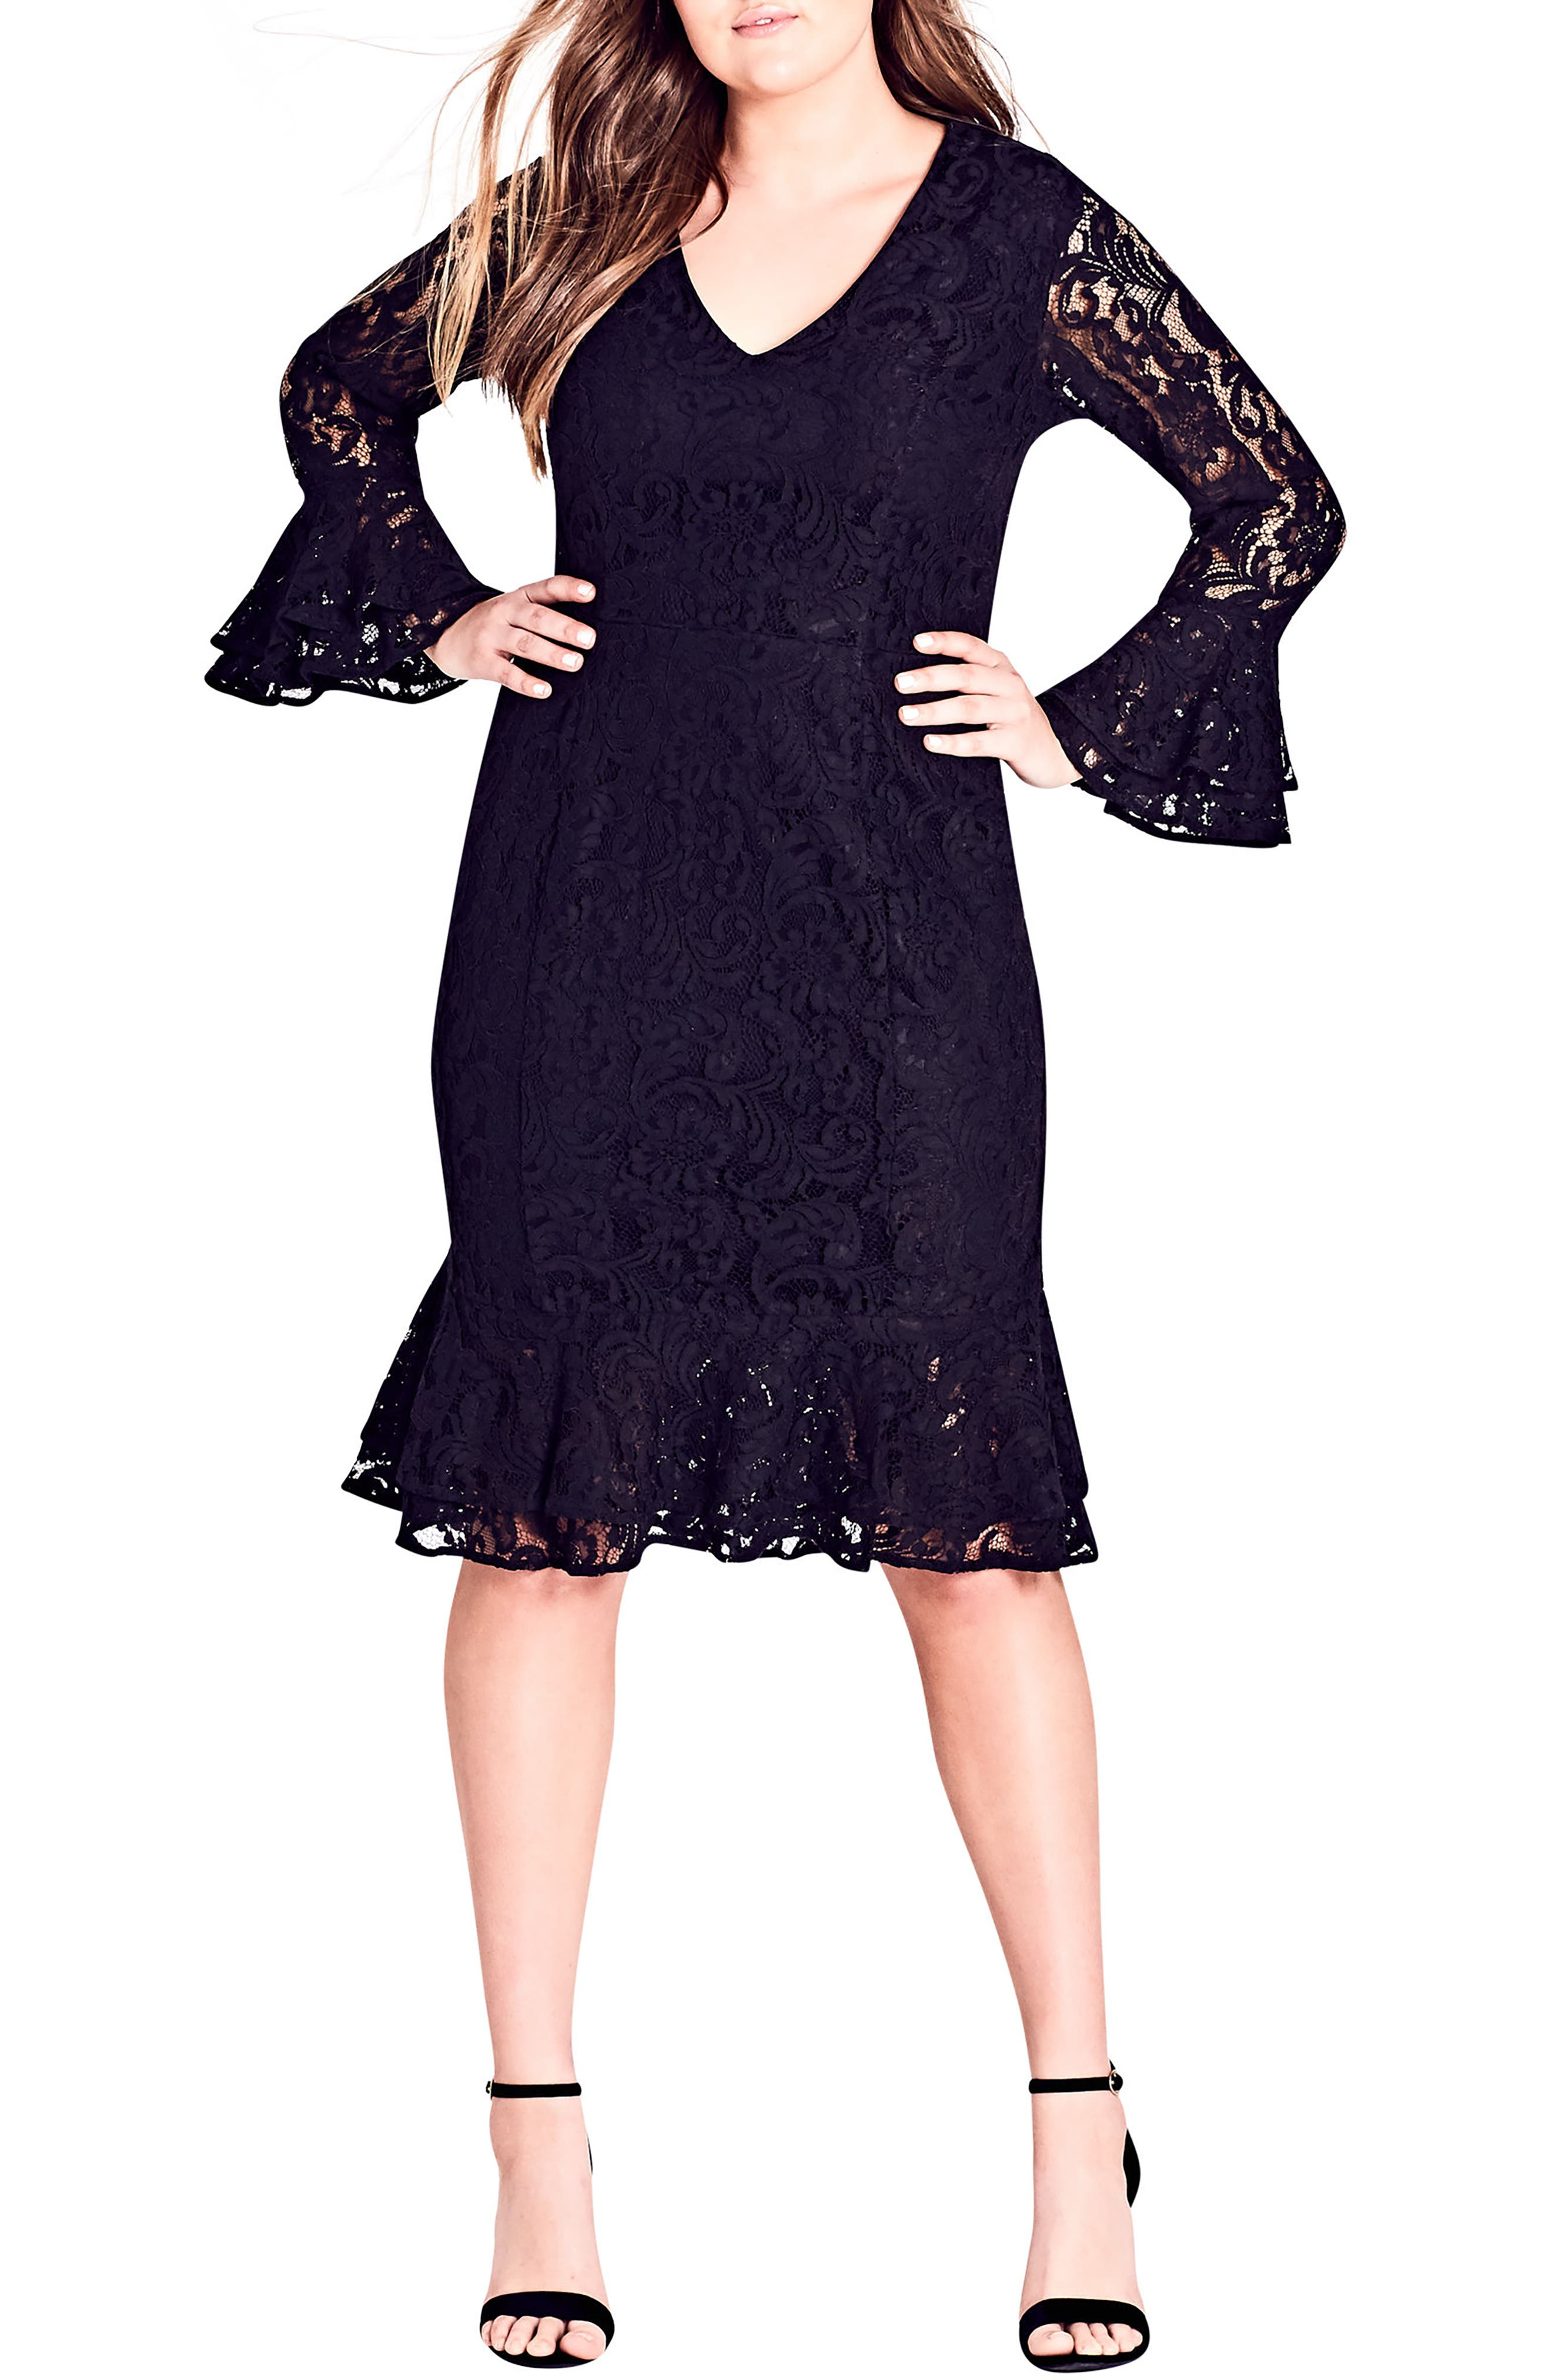 Alternate Image 1 Selected - City Chic Lace Desire Dress (Plus Size)